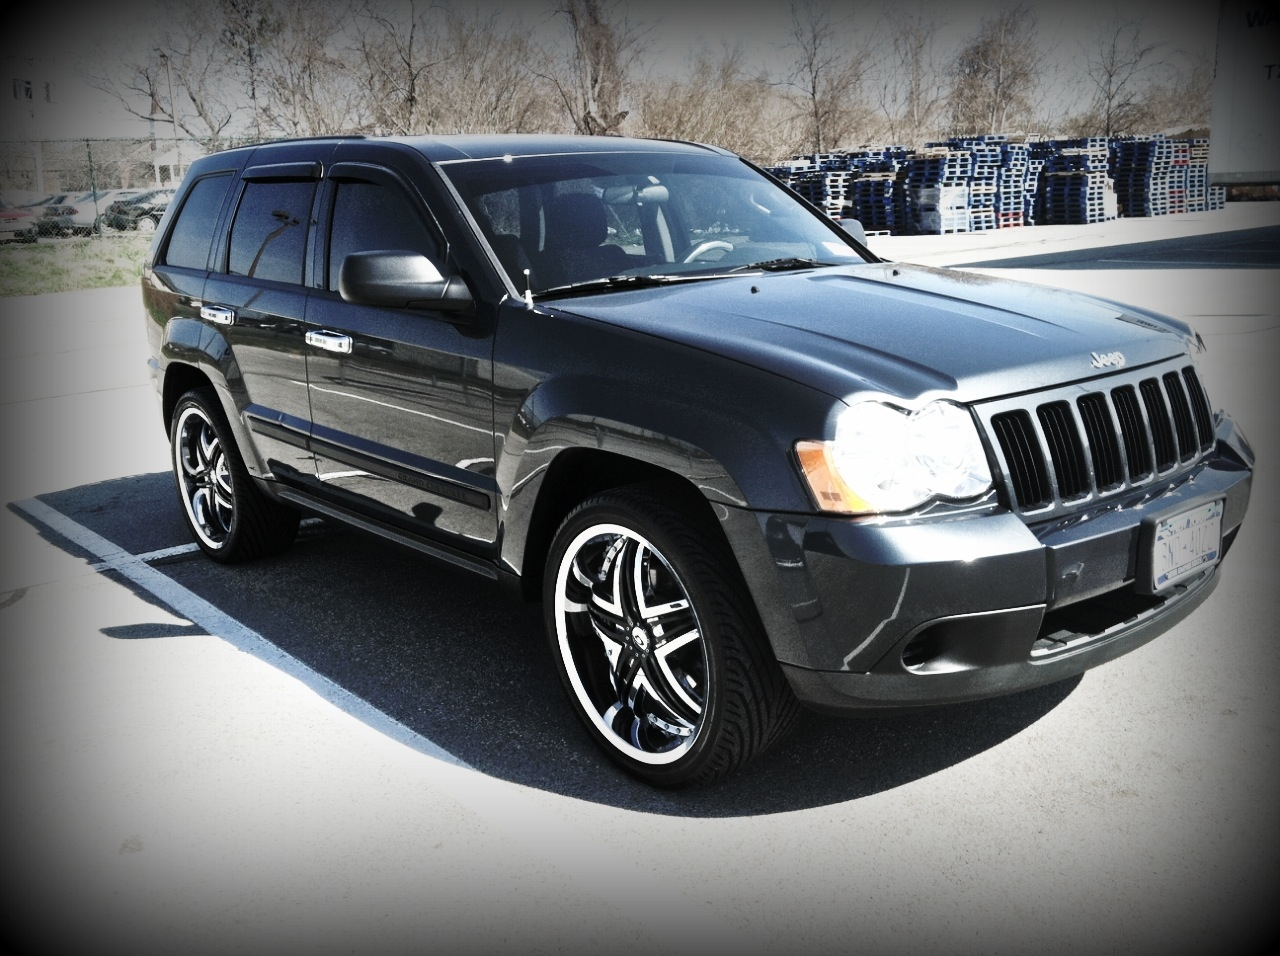 jmrando 2008 Jeep Grand Cherokee 15673698